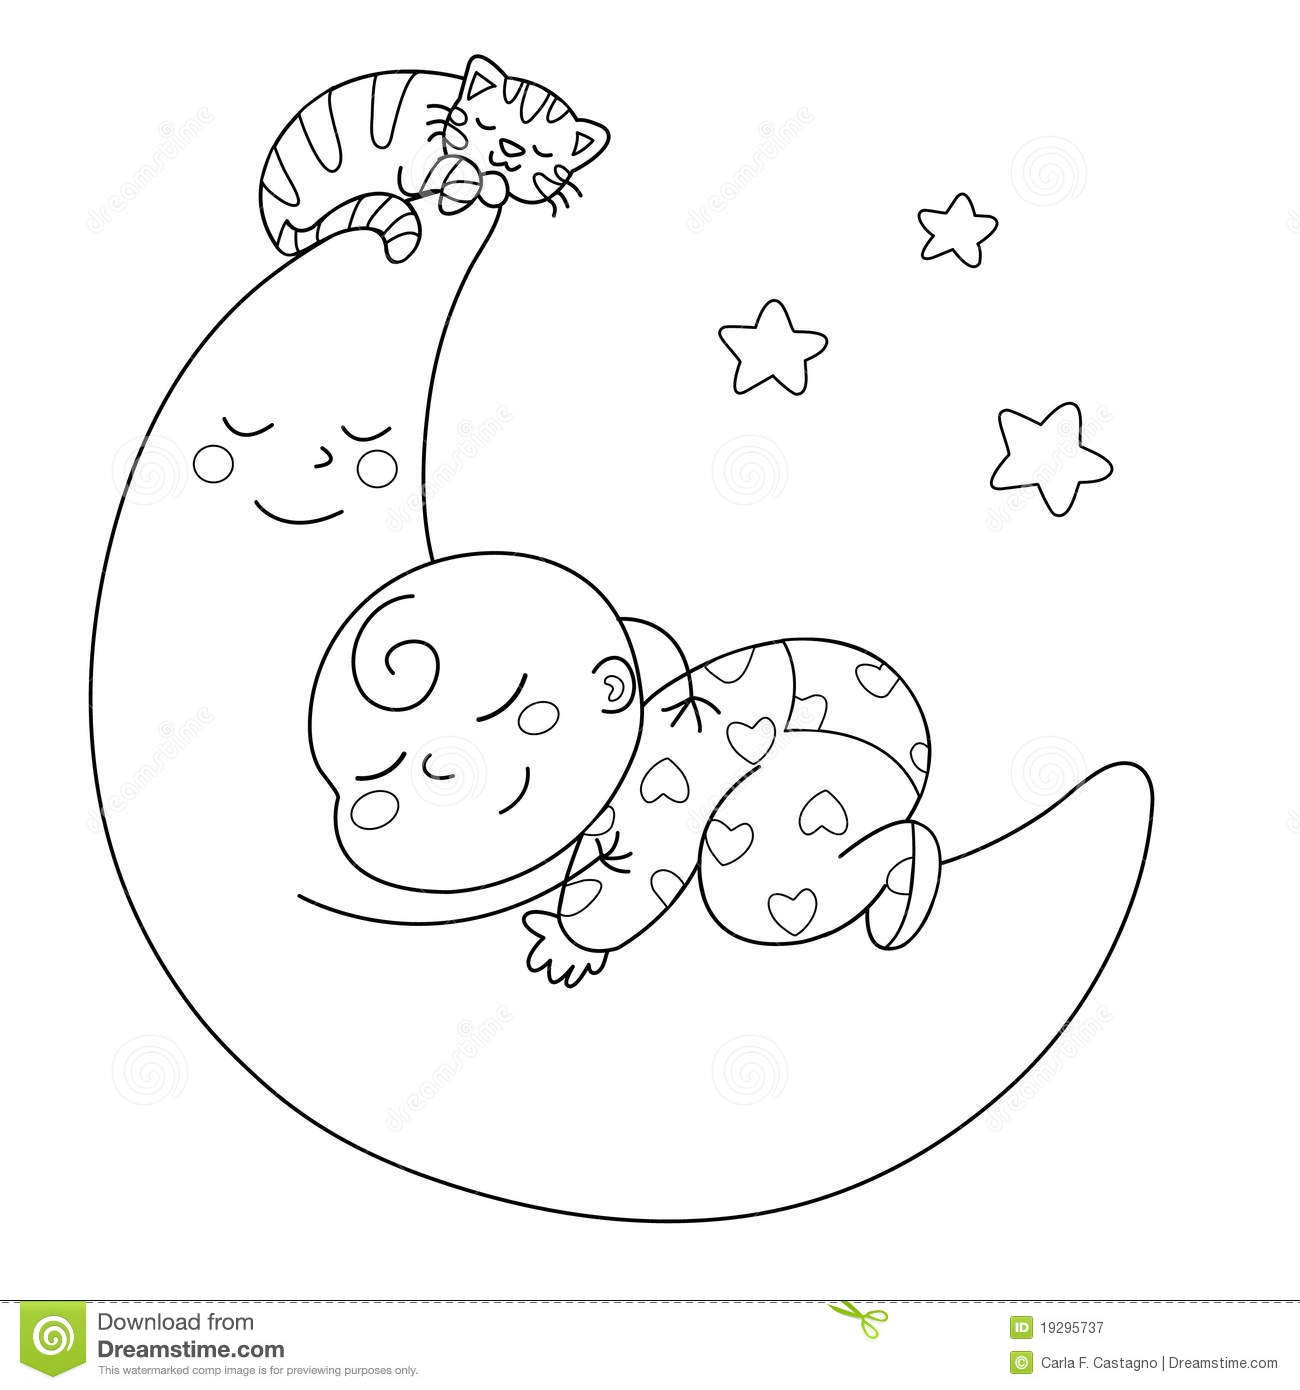 Sleeping baby stock vector. Illustration of moon, white ...